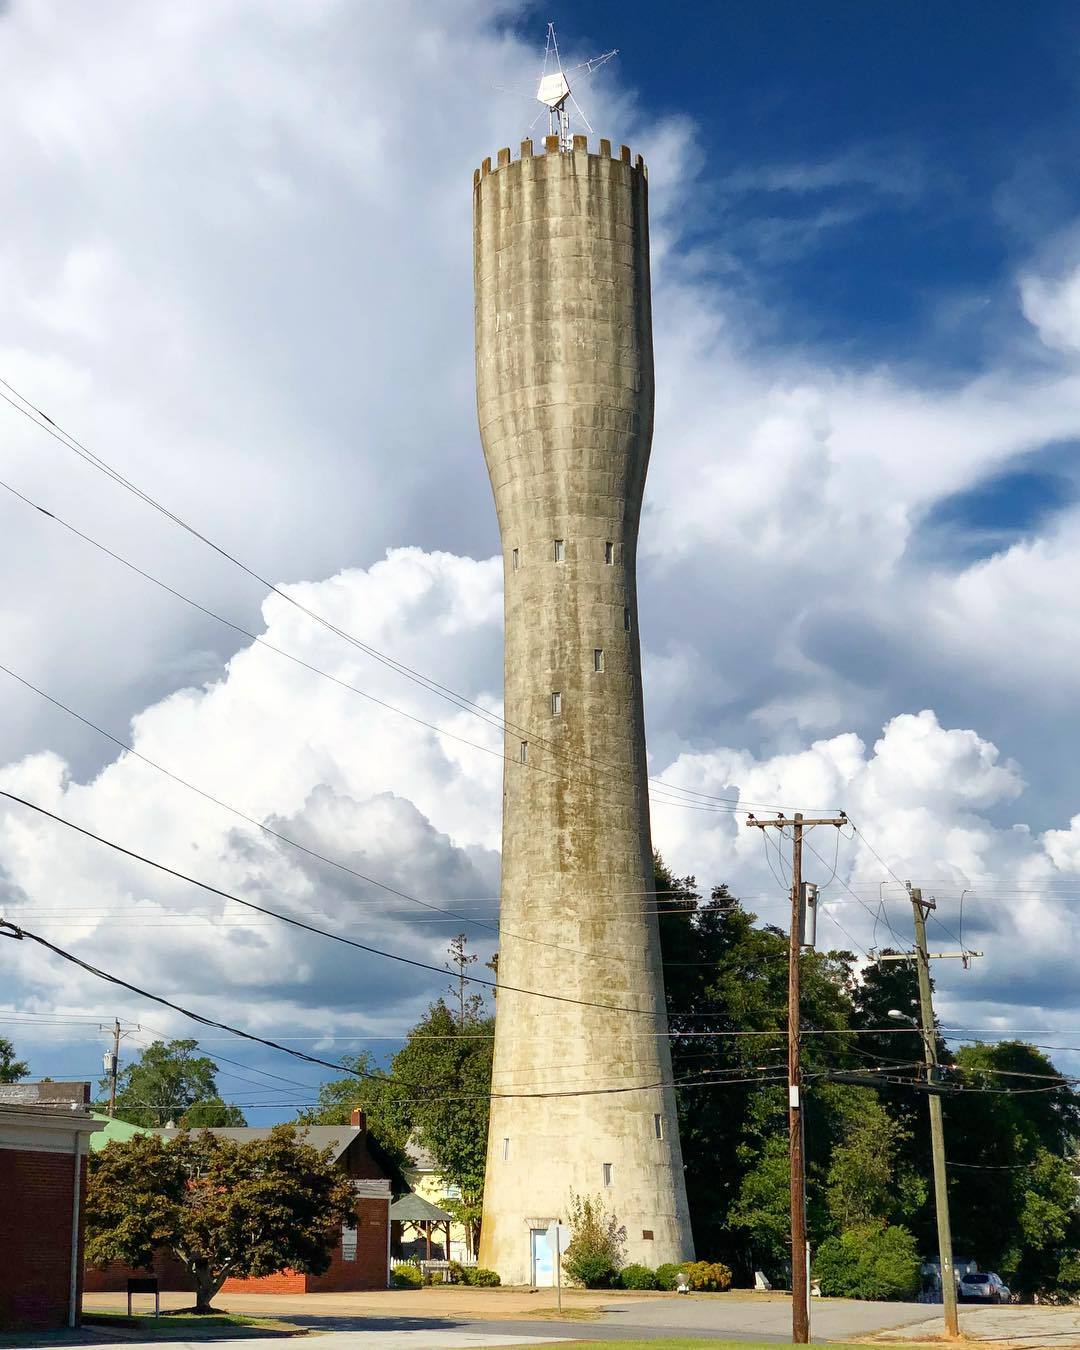 This unique, castle-like structure was built in 1908-09 as a water tower for the City of Belton. Rising 155 feet into the air, it has long been used by pilots to pinpoint their location along the eastern seaboard. It is the tallest of three standpipe water towers in the state